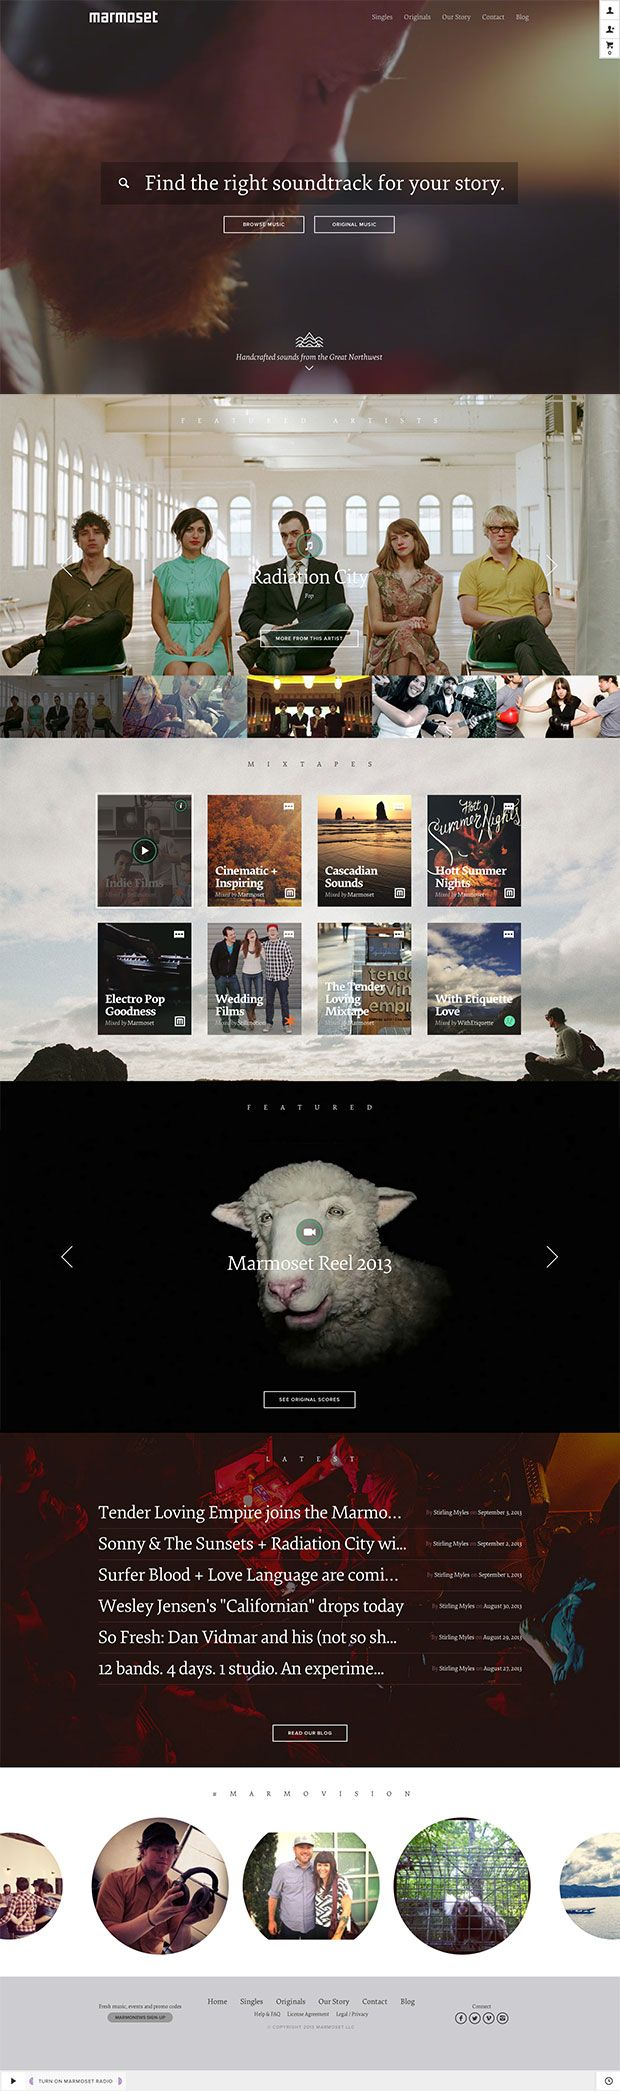 Best 58 Parallax scrolling images on Pinterest | Other